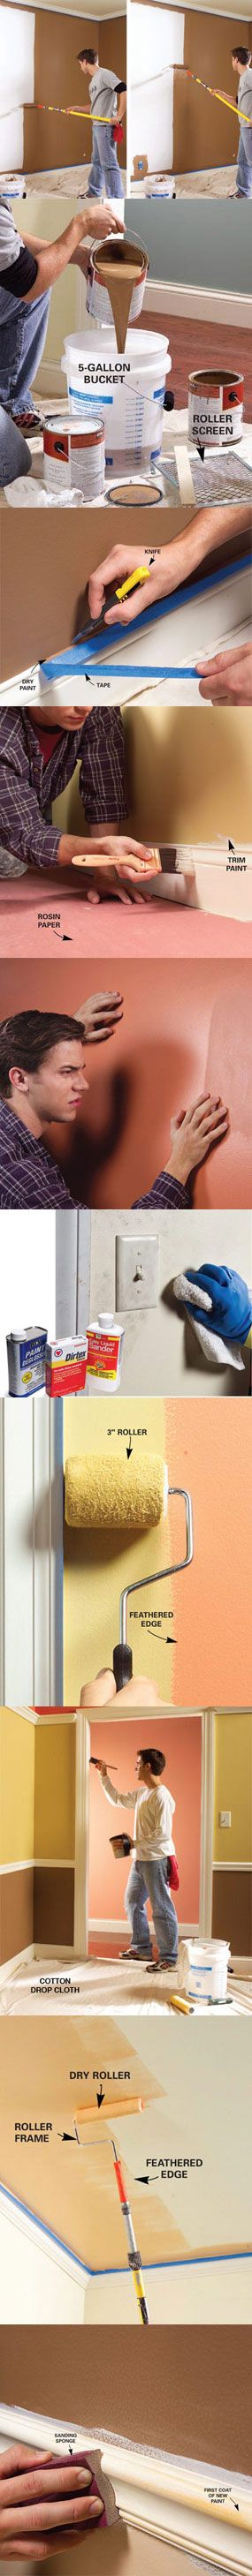 Here are 10 tips to make your painting projects go smoother and faster while giving you a professional-looking finish that you'll be proud of. You'll also find ingenious tips that can cut your cleanup time in half and extend the life of your paint brushes. Learn all 10 tips at http://www.familyhandyman.com/DIY-Projects/Painting/Painting-Tips/10-interior-house-painting-tips--painting-techniques-for-the-perfect-paint-job/View-All